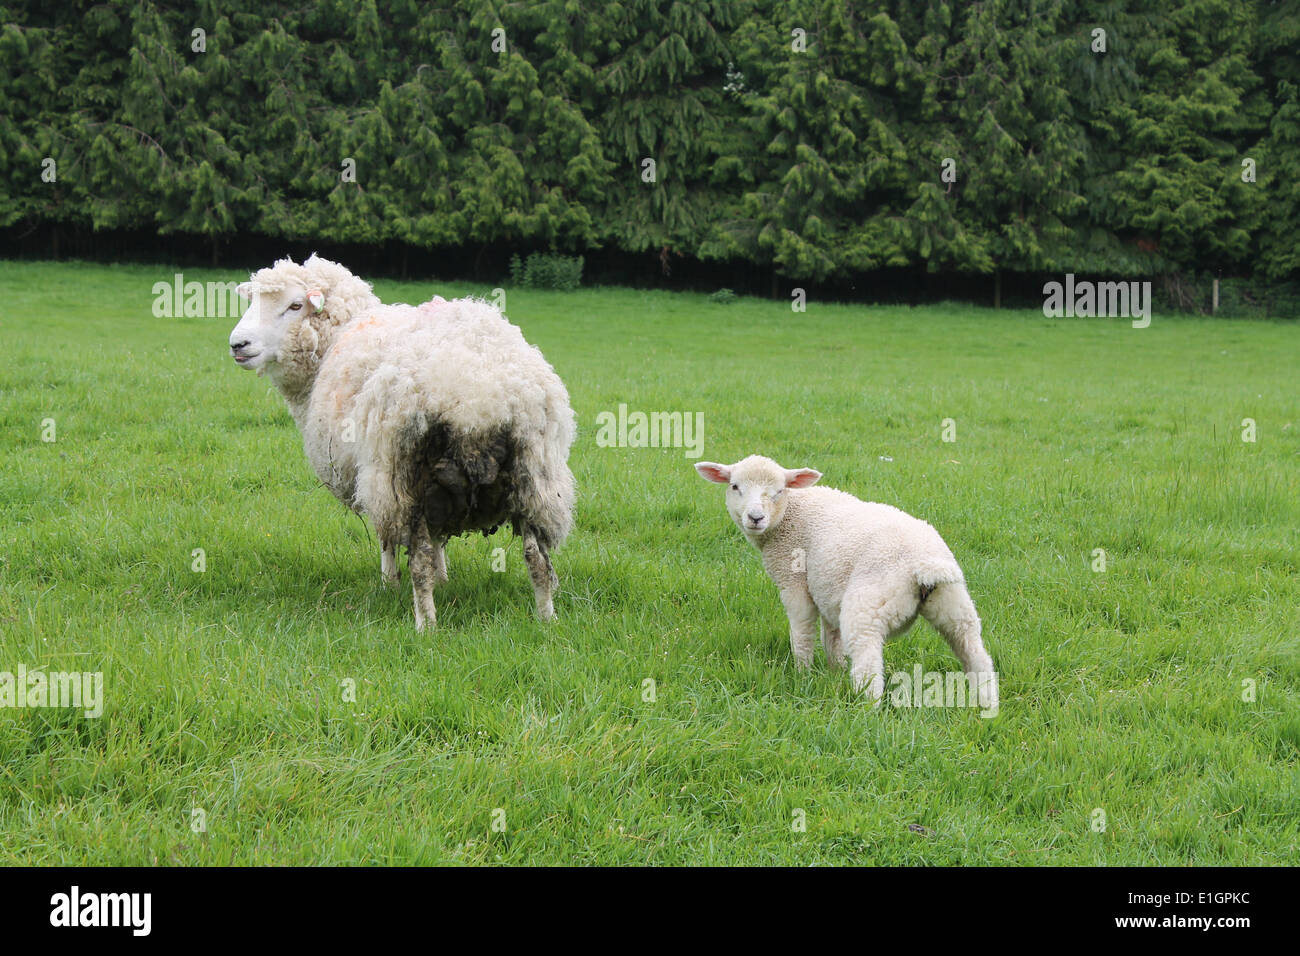 Mother Ewe with her Young Lamb - Stock Image